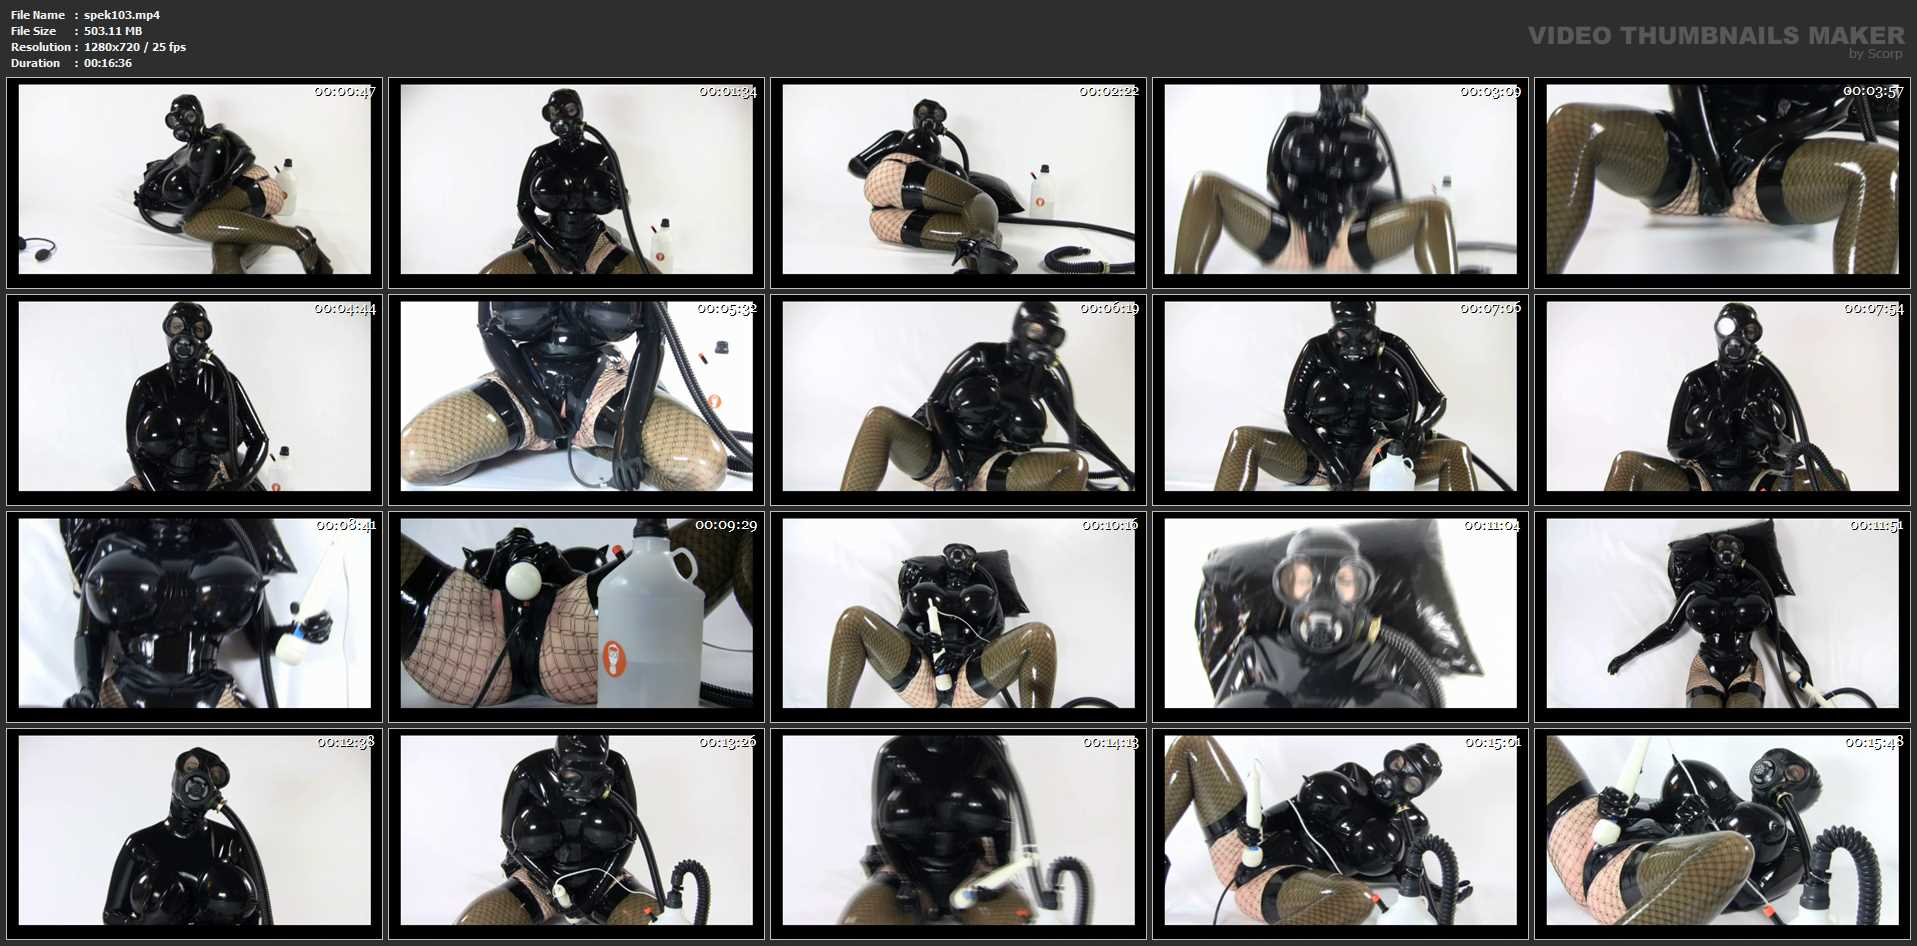 [SPEKULA] Rubber total gasmask [HD][720p][MP4]